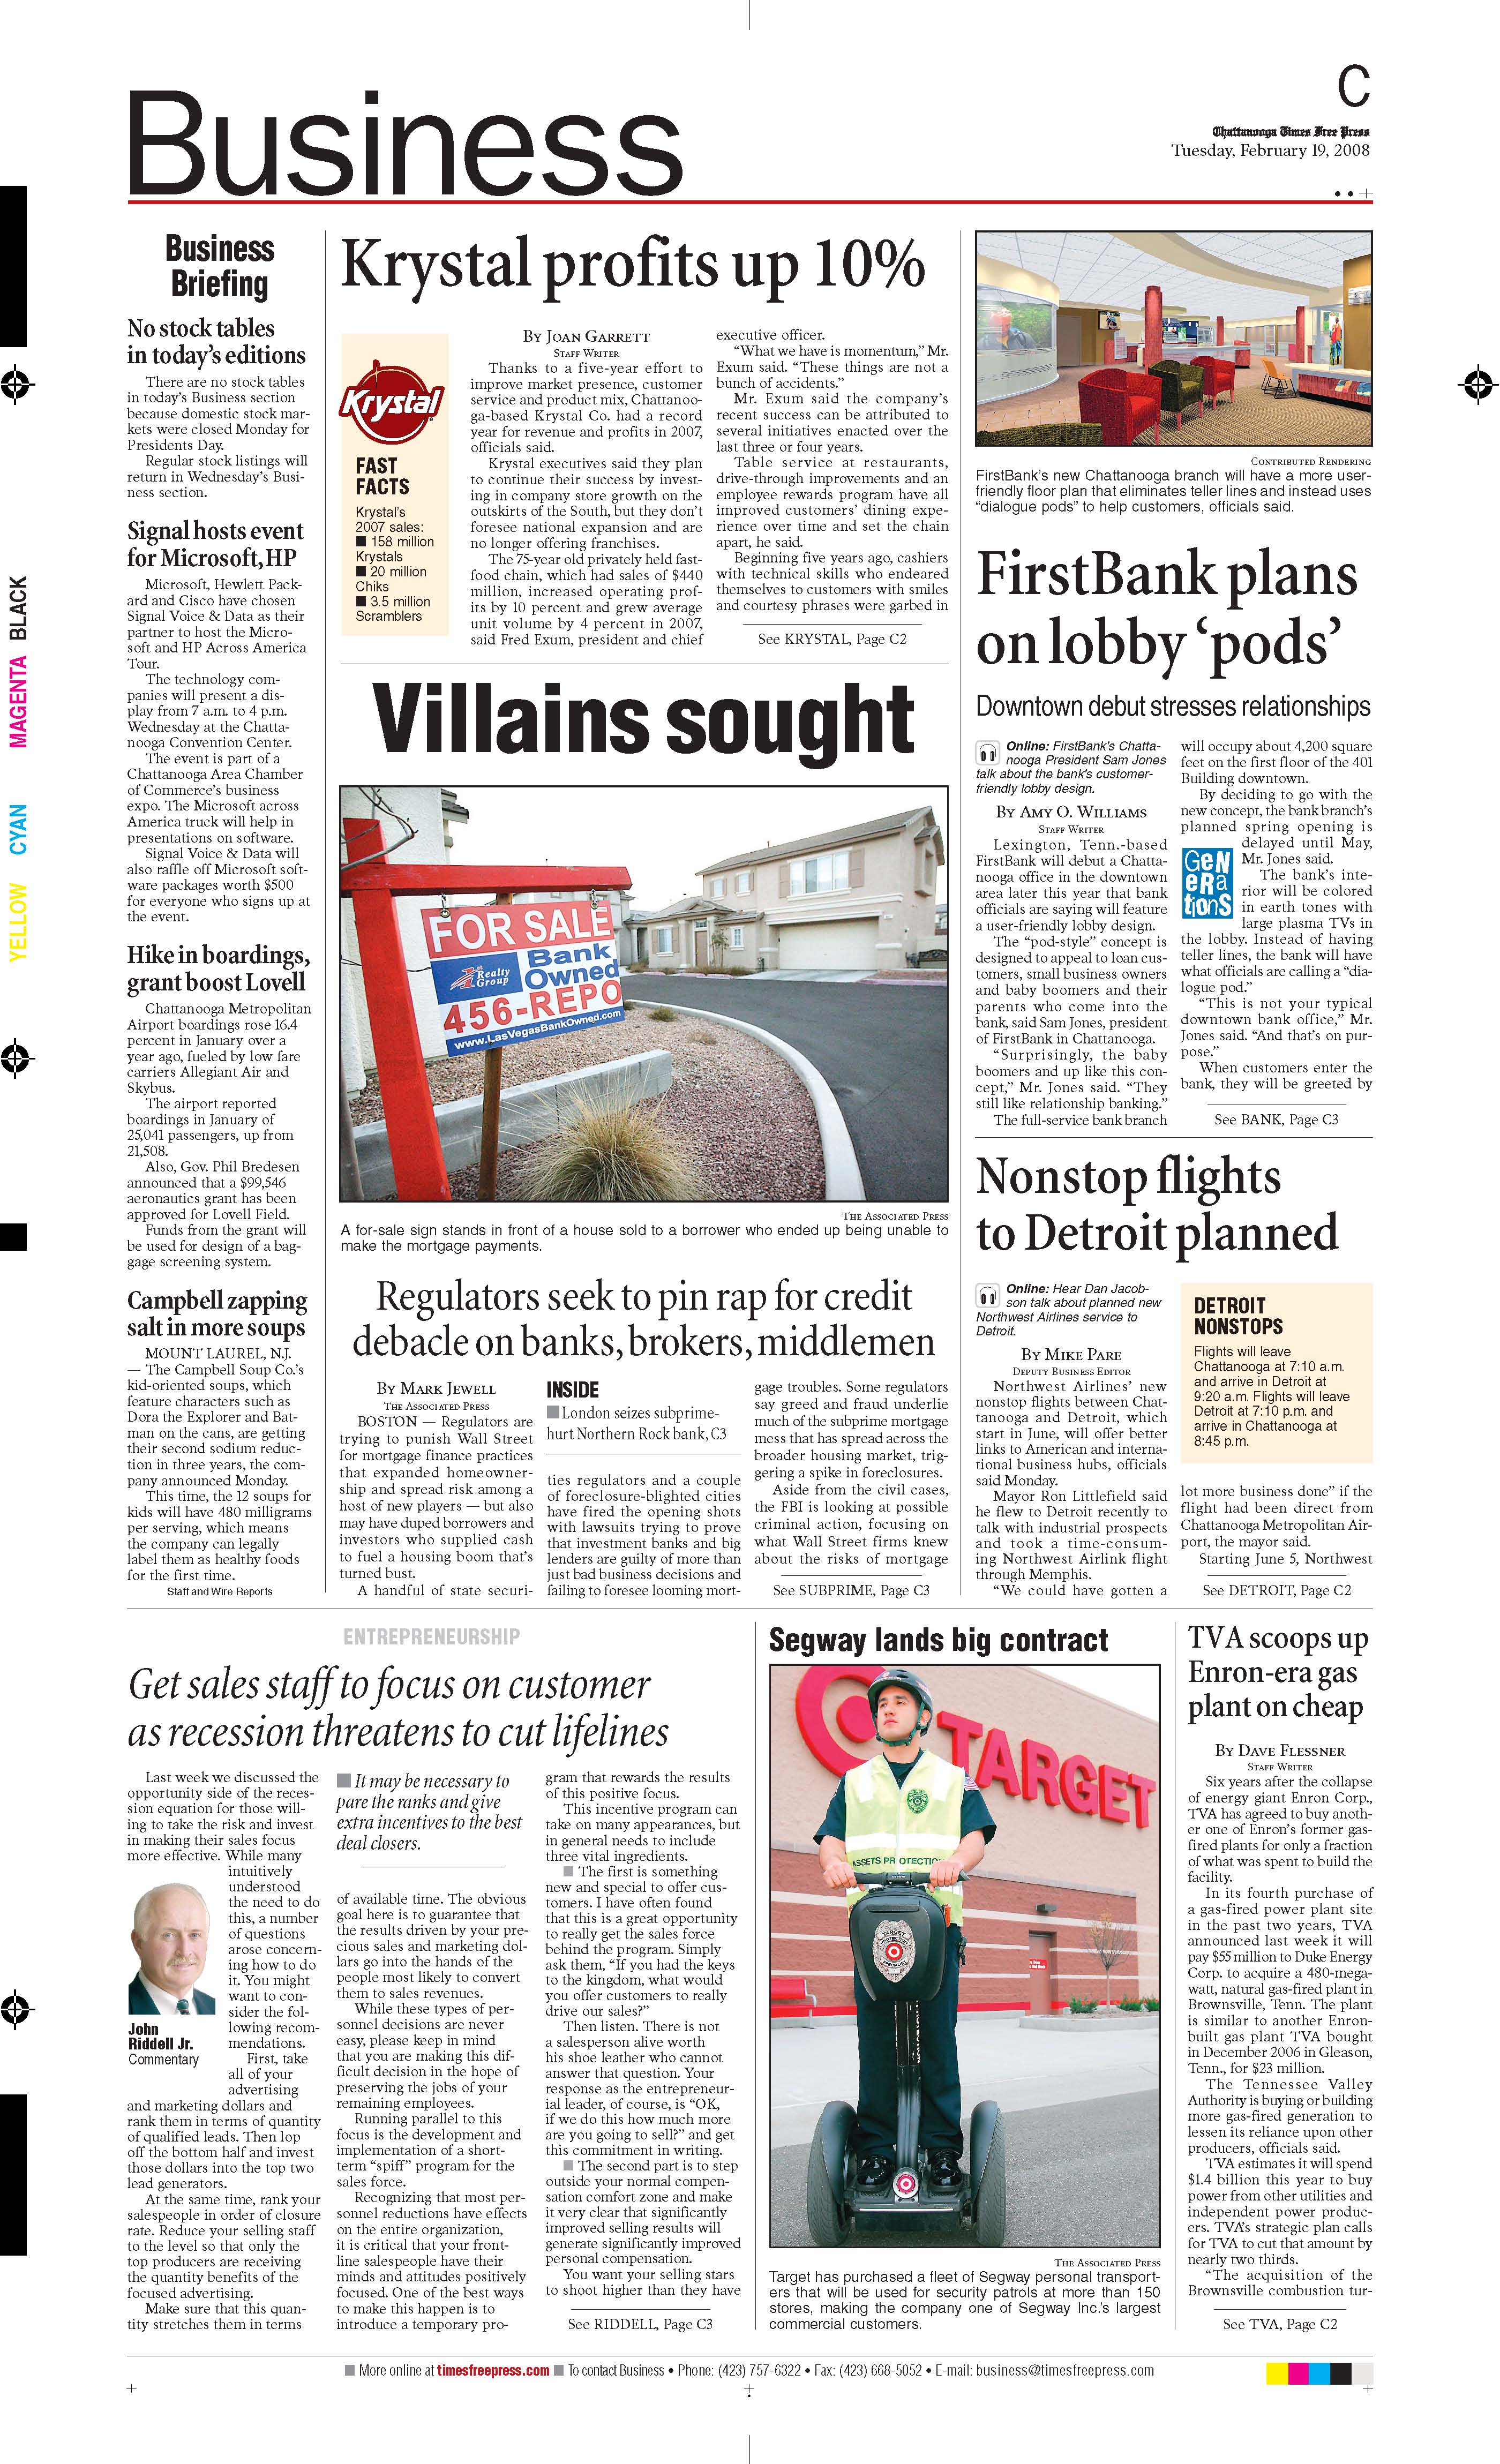 Chattanooga business section focuses on local news - Talking Biz News